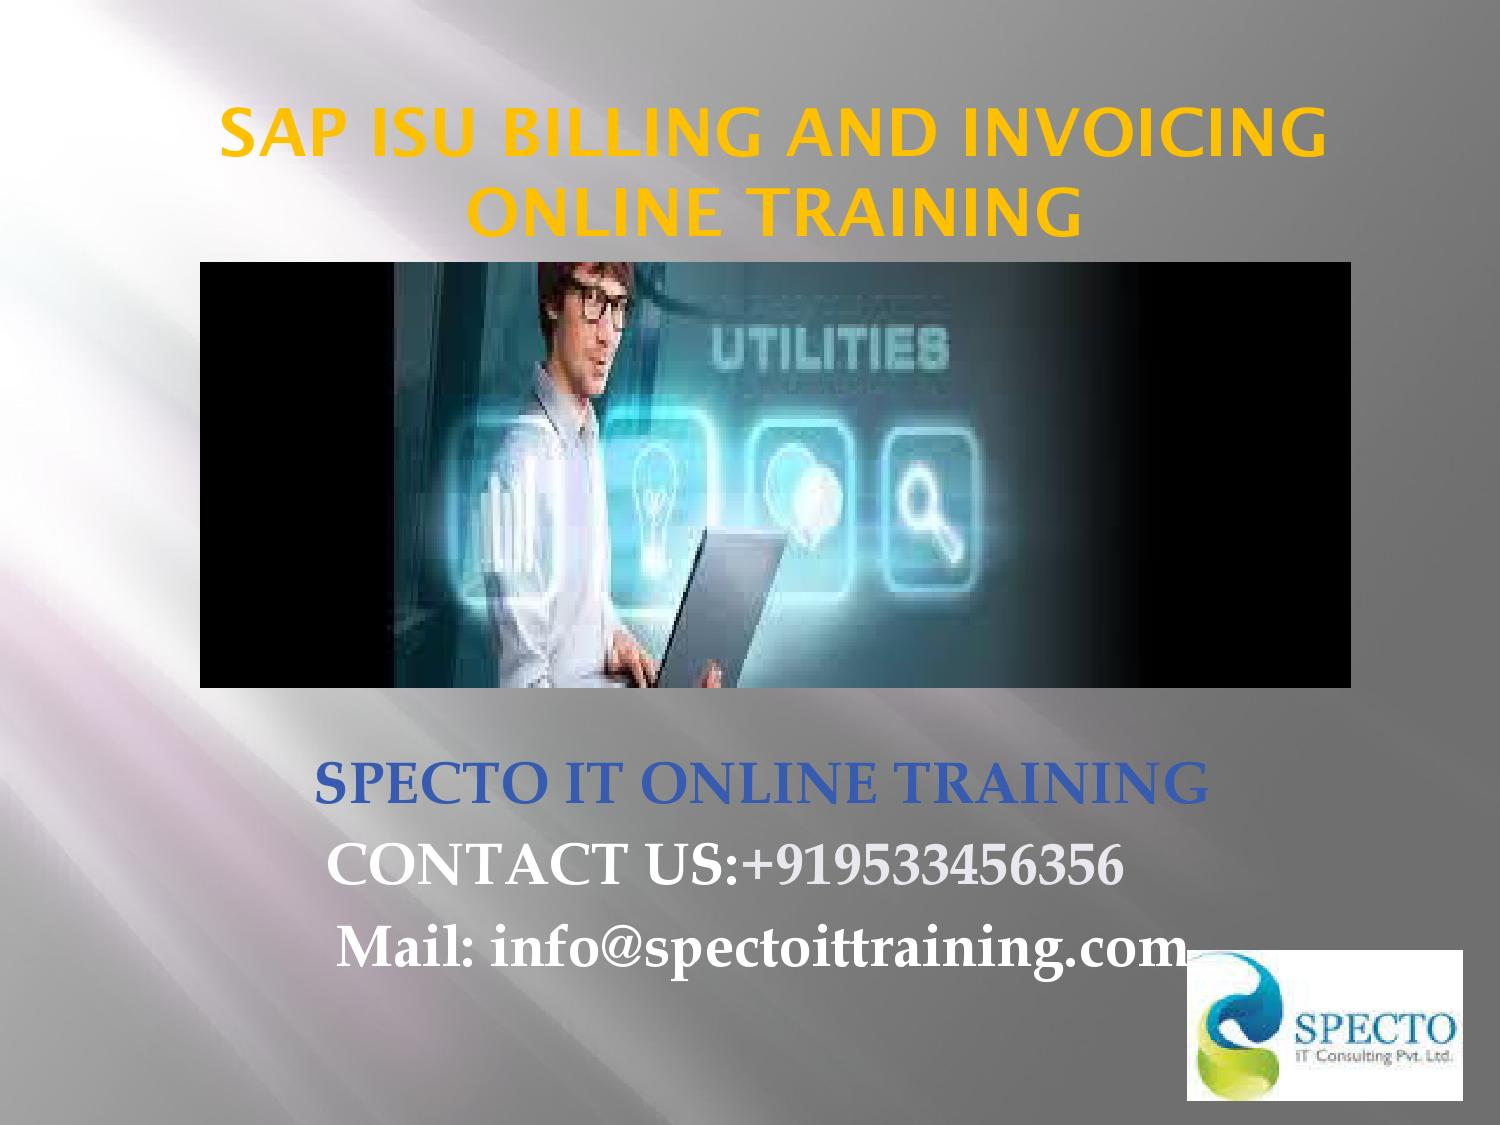 Sap isu billing and invoicing online training in bangalore